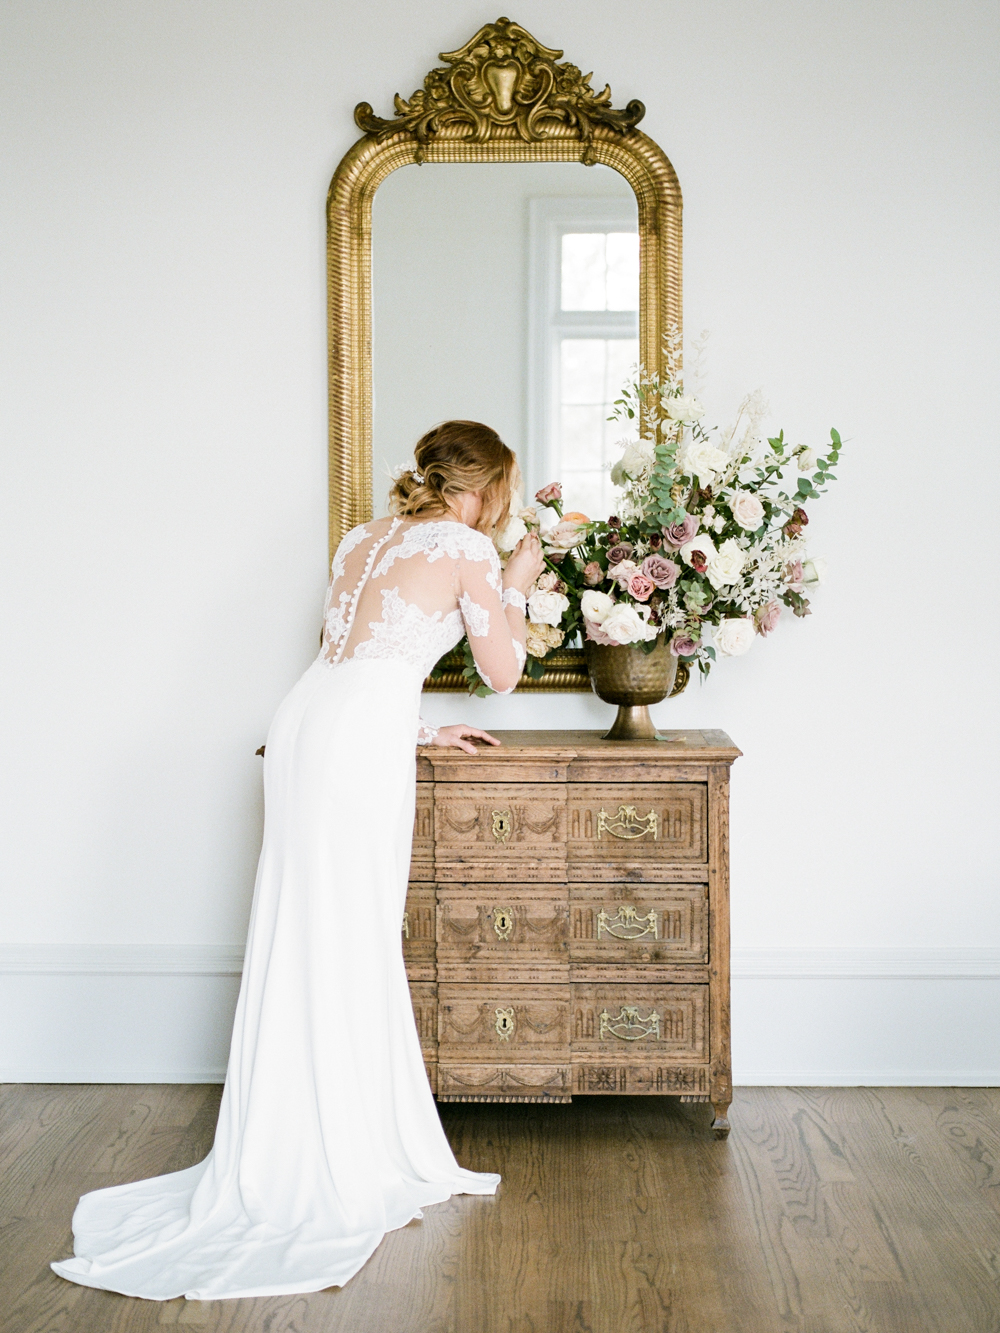 Christine Gosch - destination film photographer - houston wedding photographer - fine art film photographer - elopement photographer - destination wedding - understated wedding - simple beautiful wedding photography-120.jpg